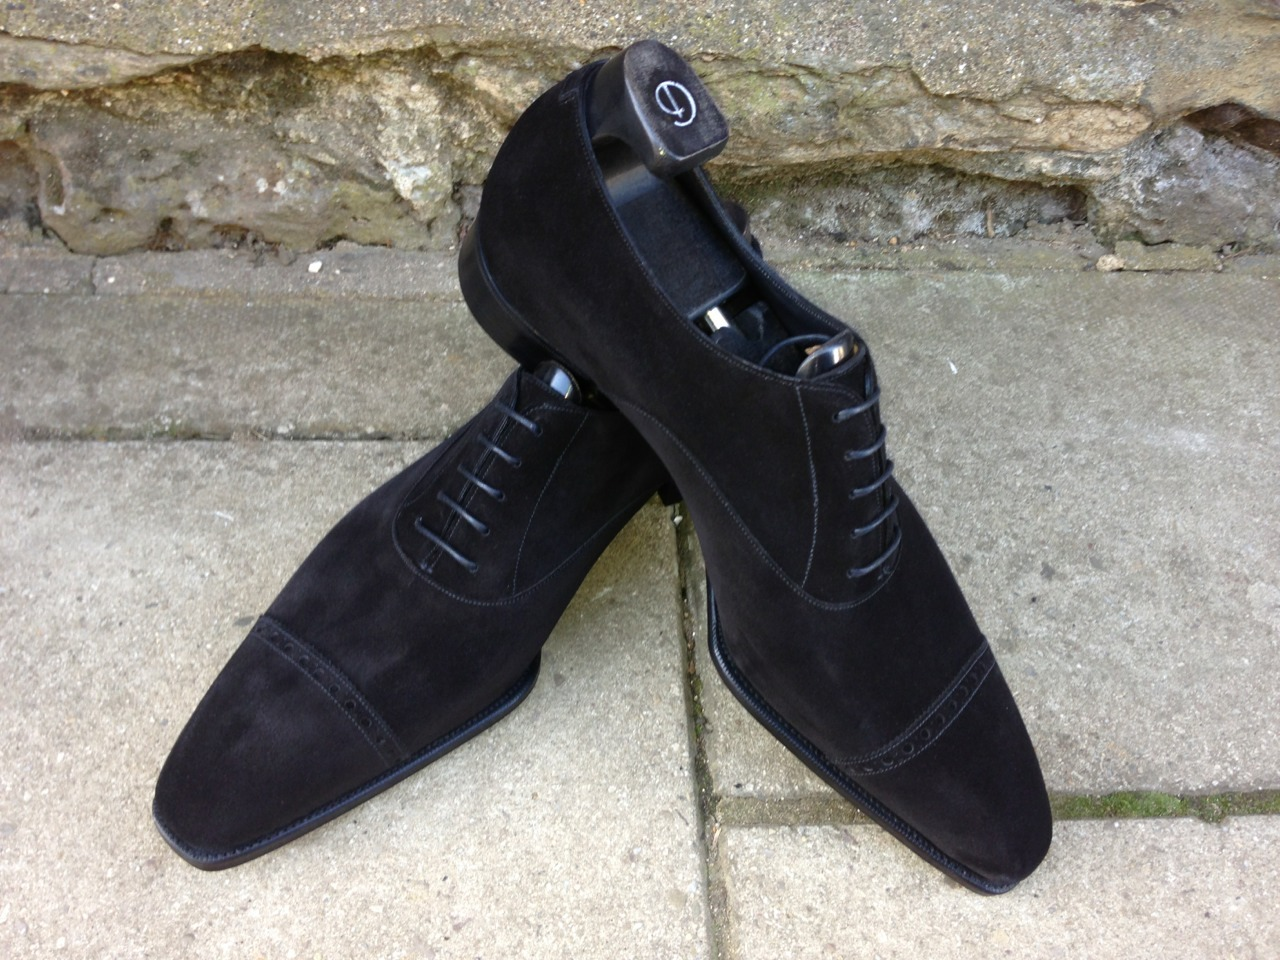 bespoke-england:  G&G Cliffe in Black Suede